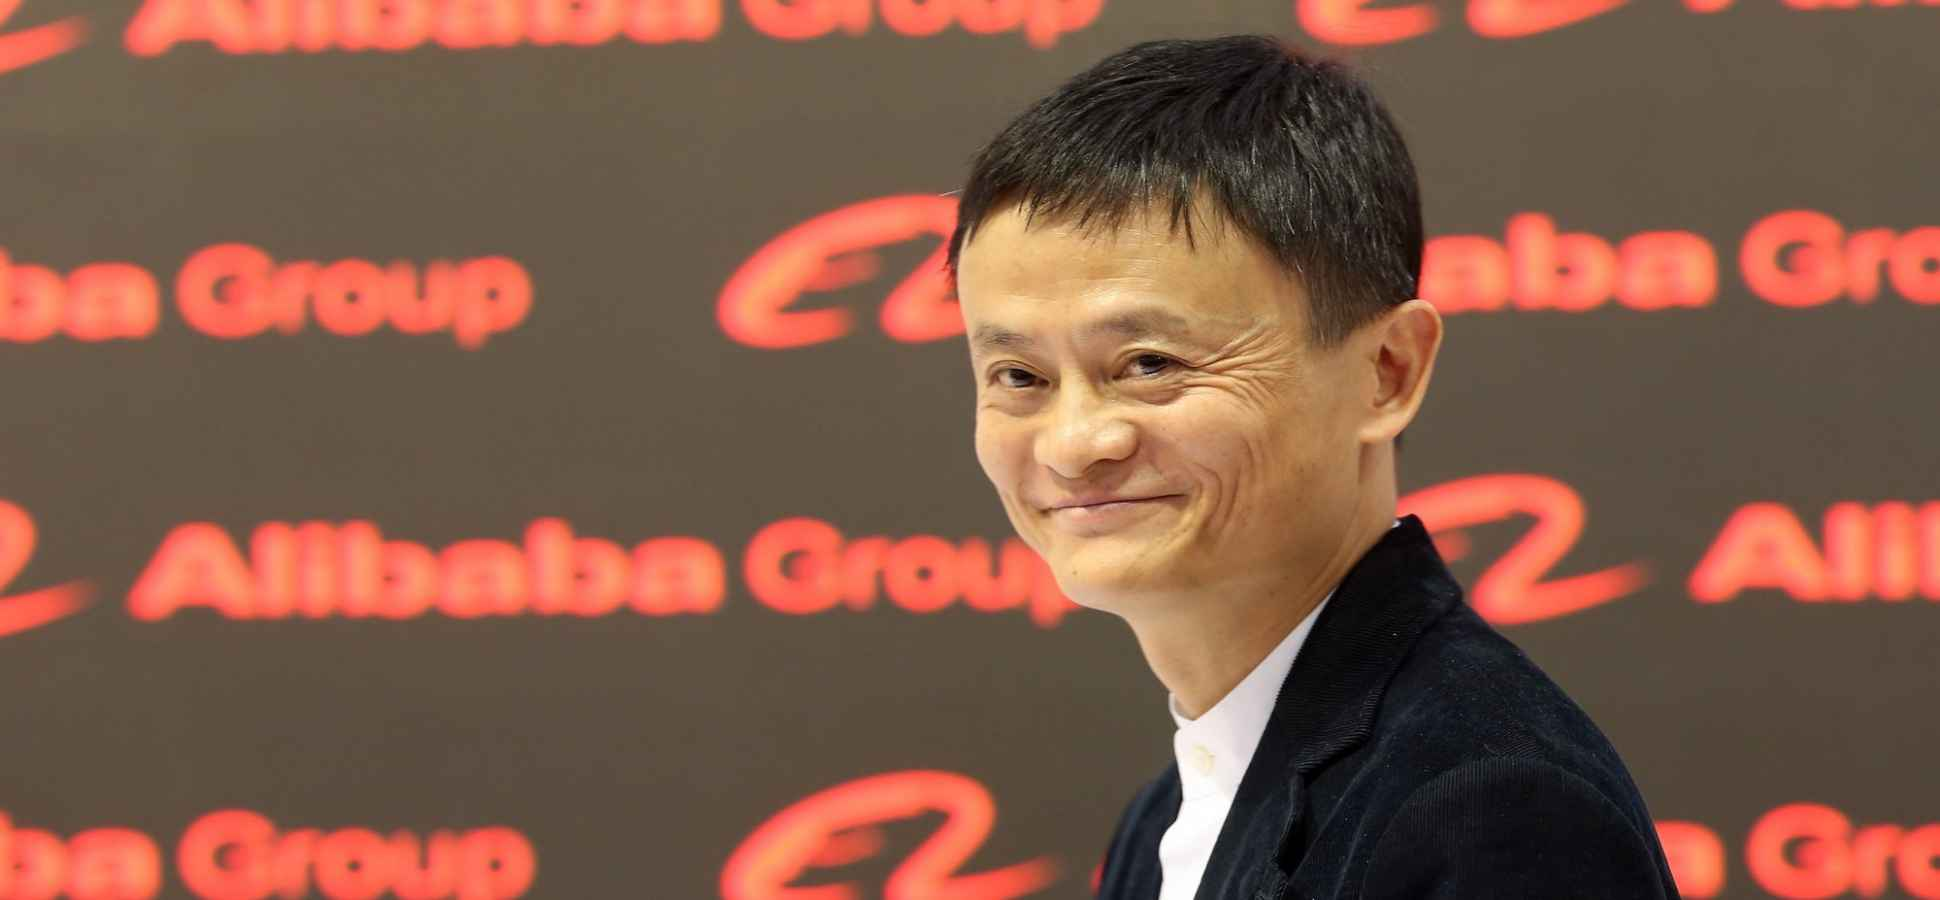 The Rags-to-Riches Life Story of Alibaba Founder Jack Ma